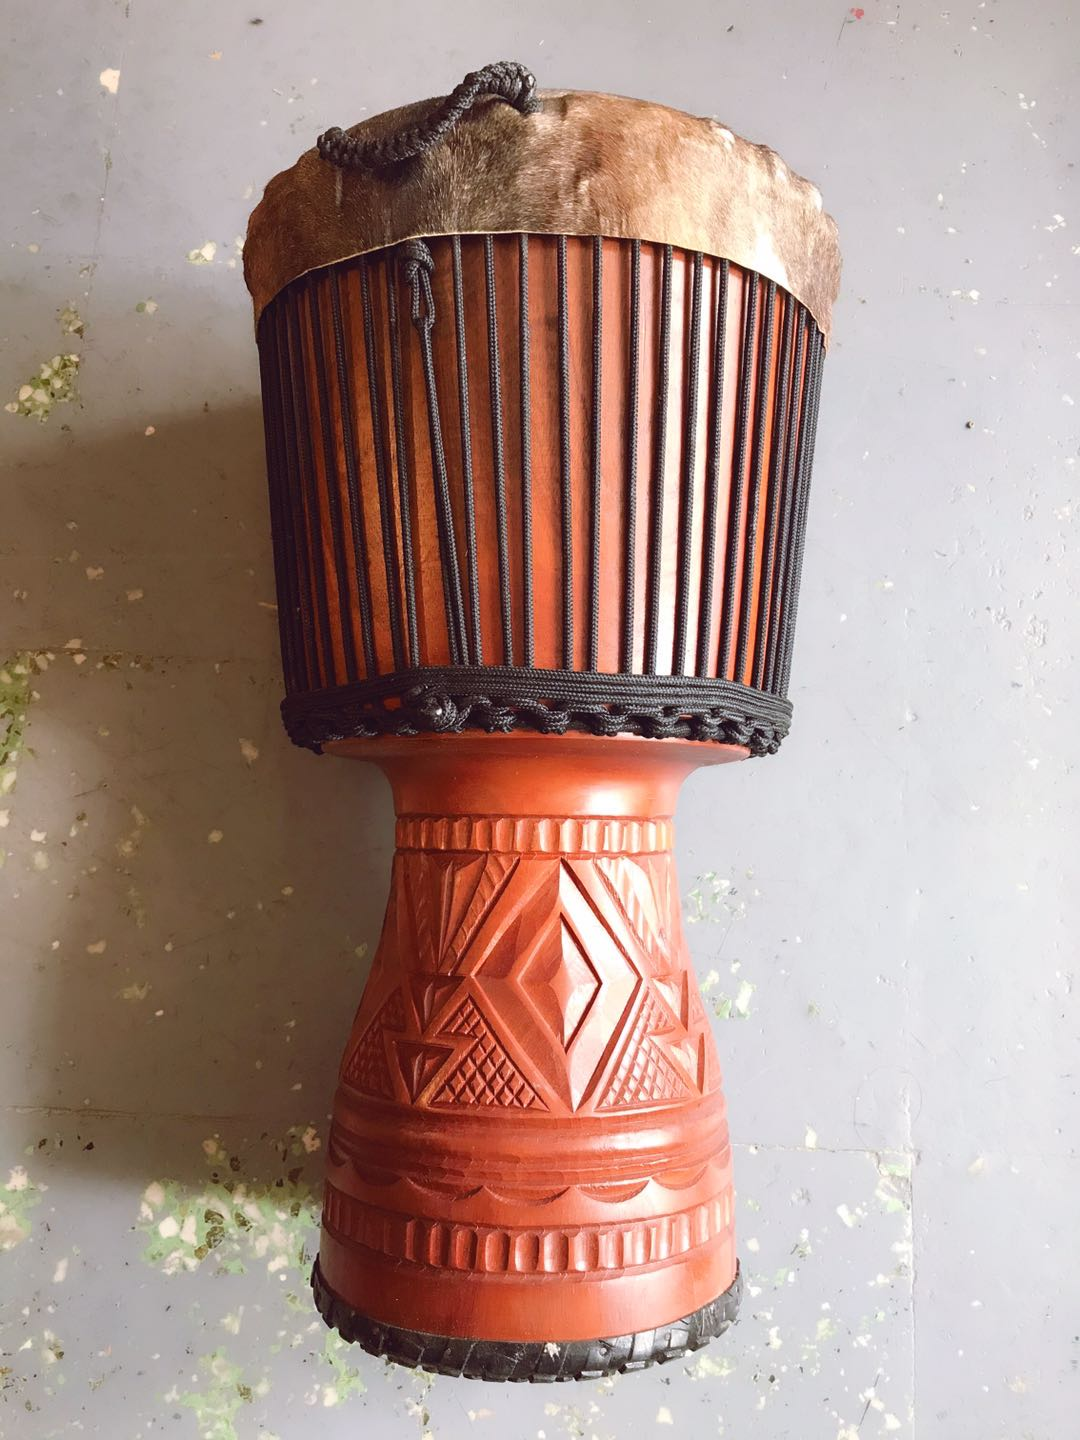 FS flyer hardwood 12 inch professional high end stage performance African drum manding folk accompaniment handdrum Djembe